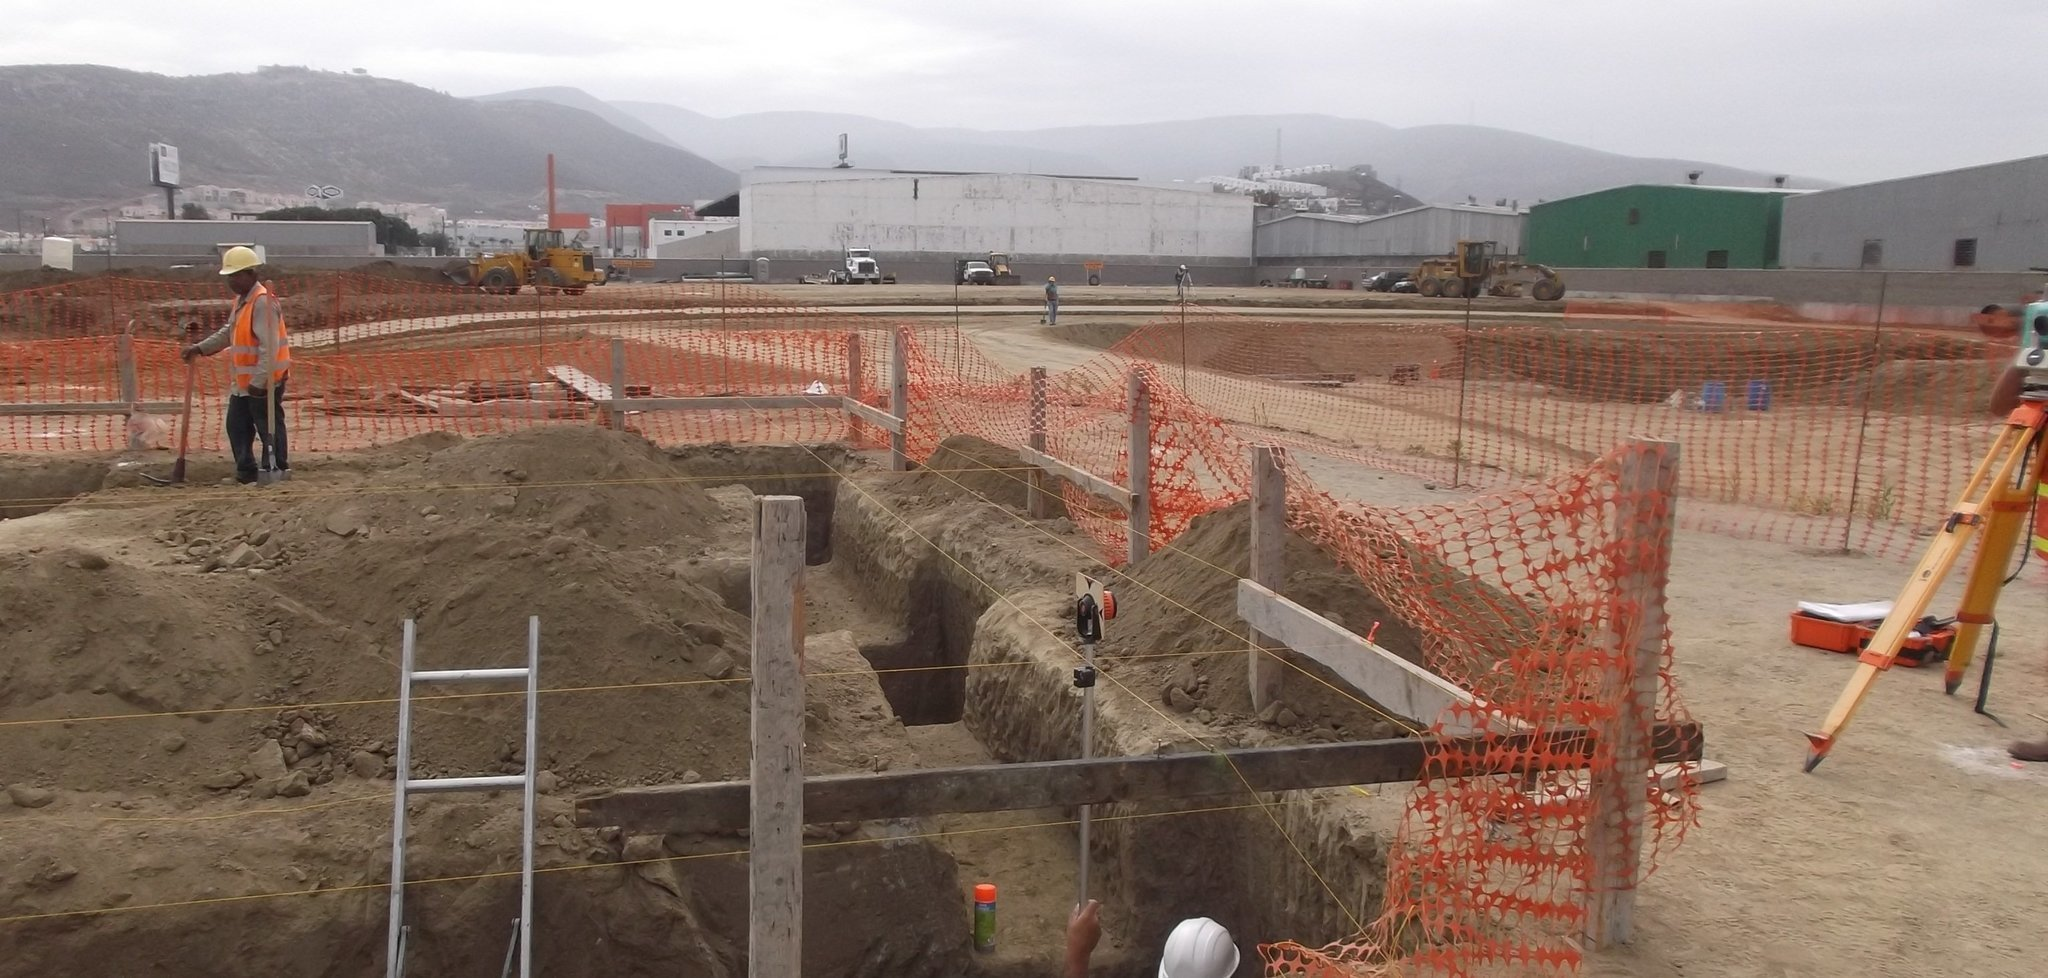 Baja California s first desalination plant to open in 2017 in